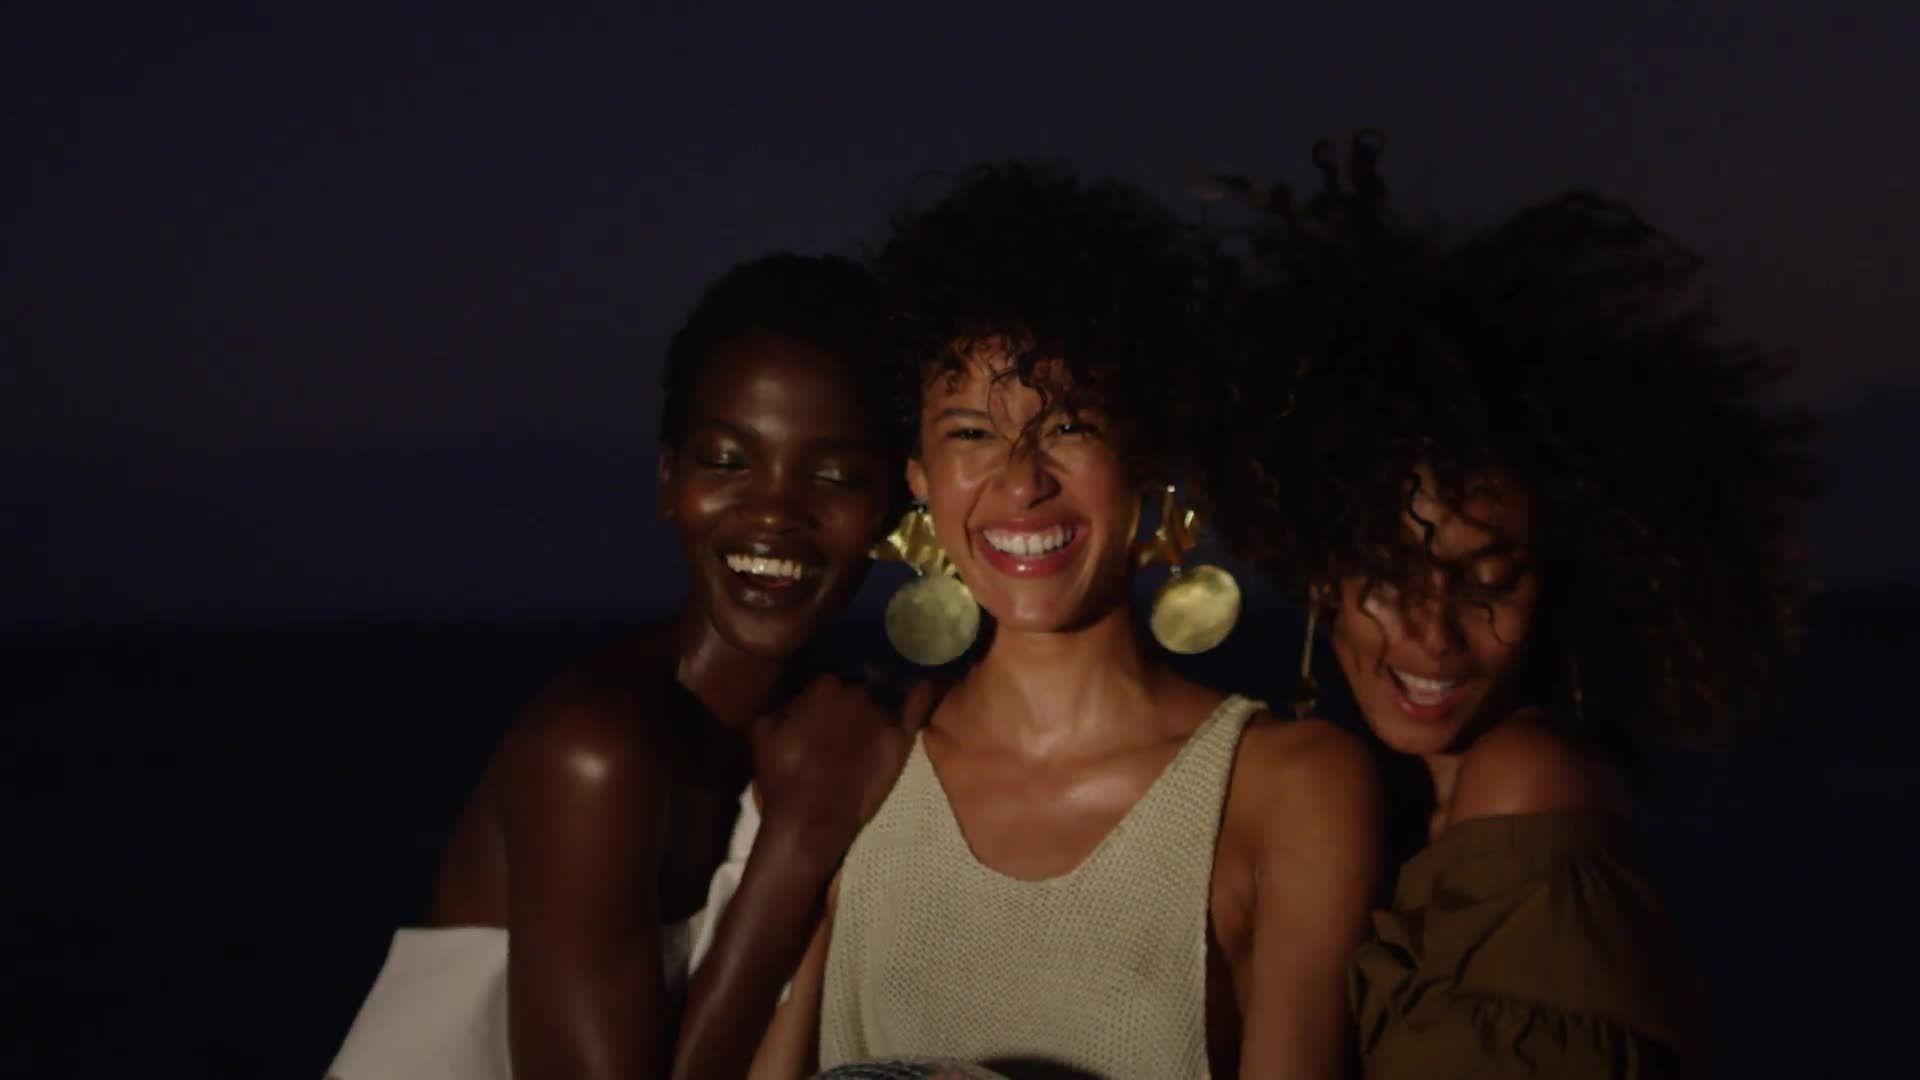 3 International Supermodels on Why the Fashion Industry Needs to Be More Inclusive